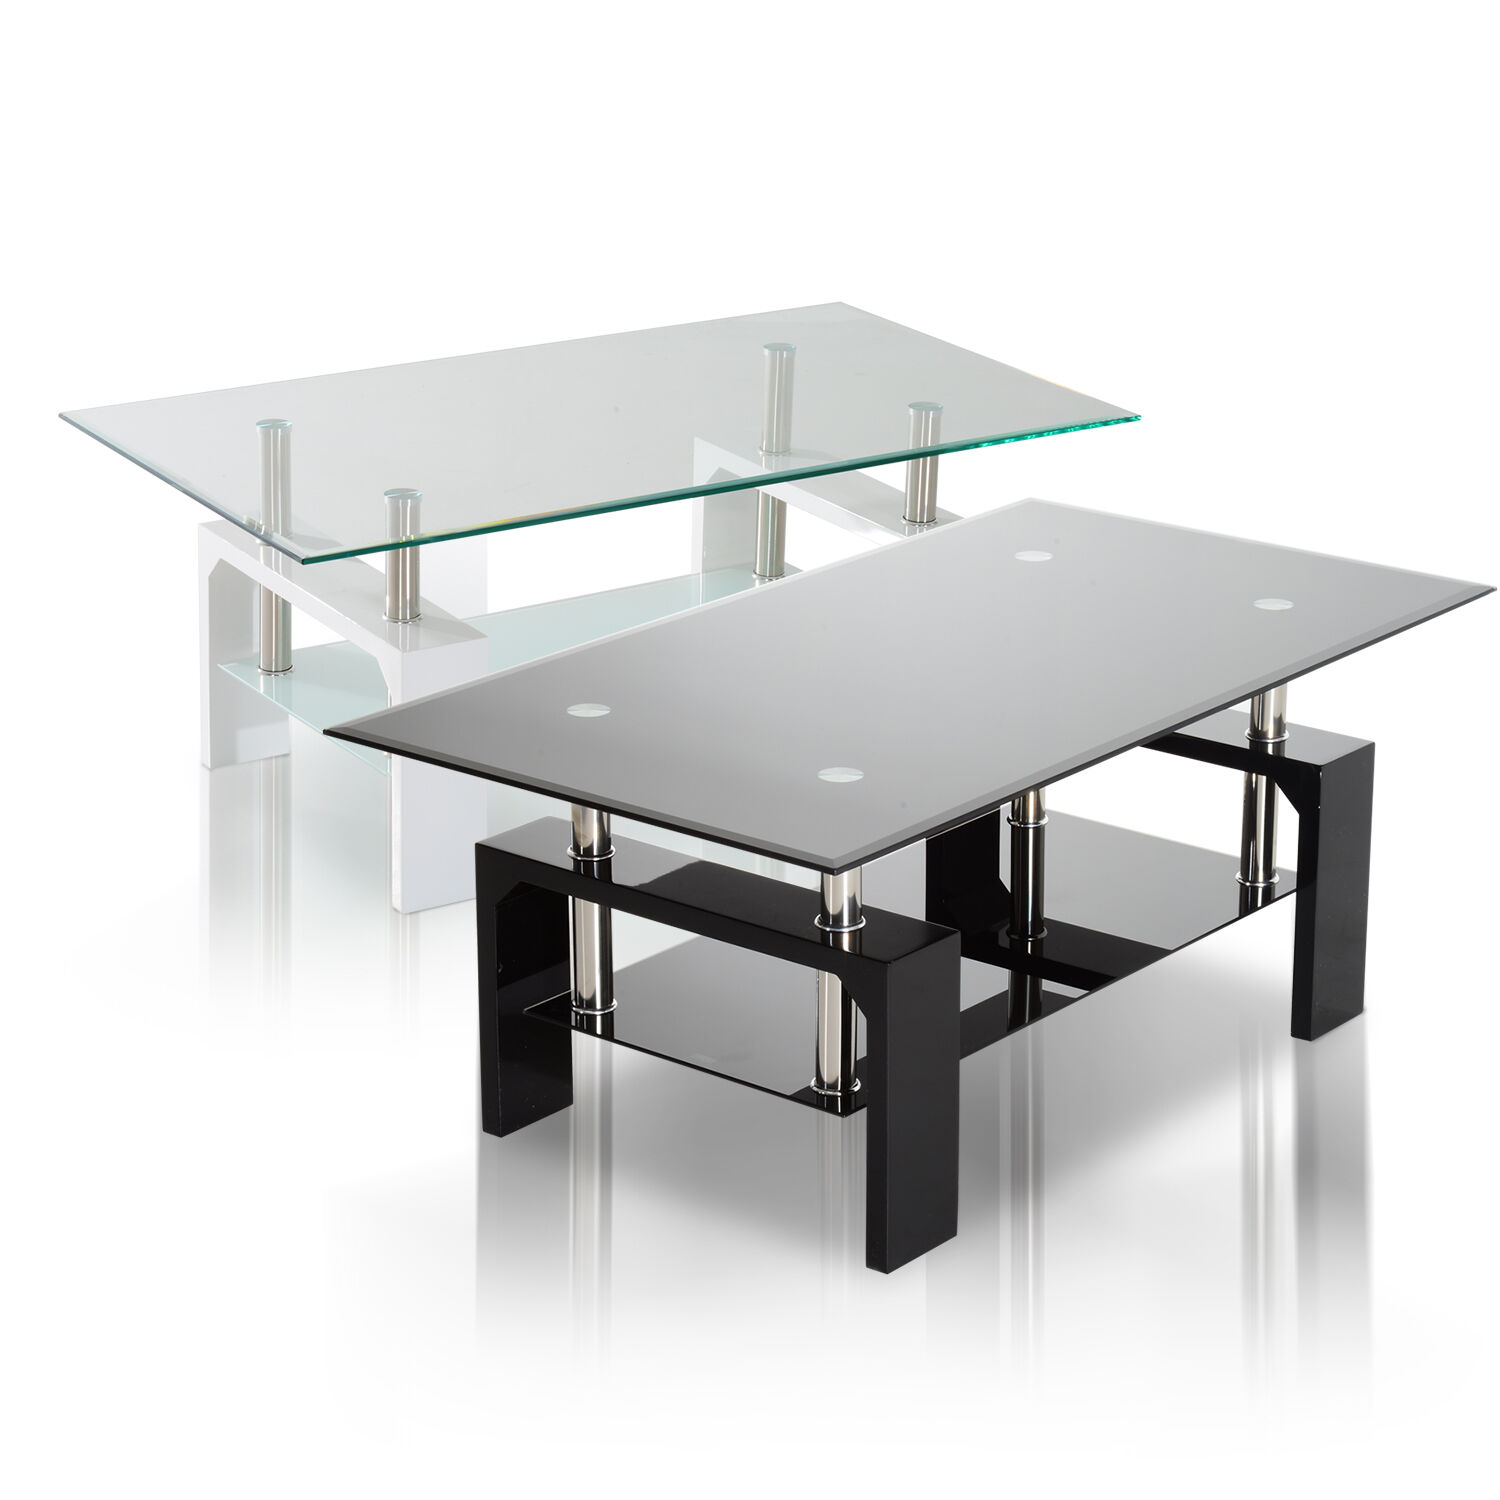 Glass Coffee Table For Sale On Ebay: Tempered Glass Top Coffee Table Rectangular Wood Shelf